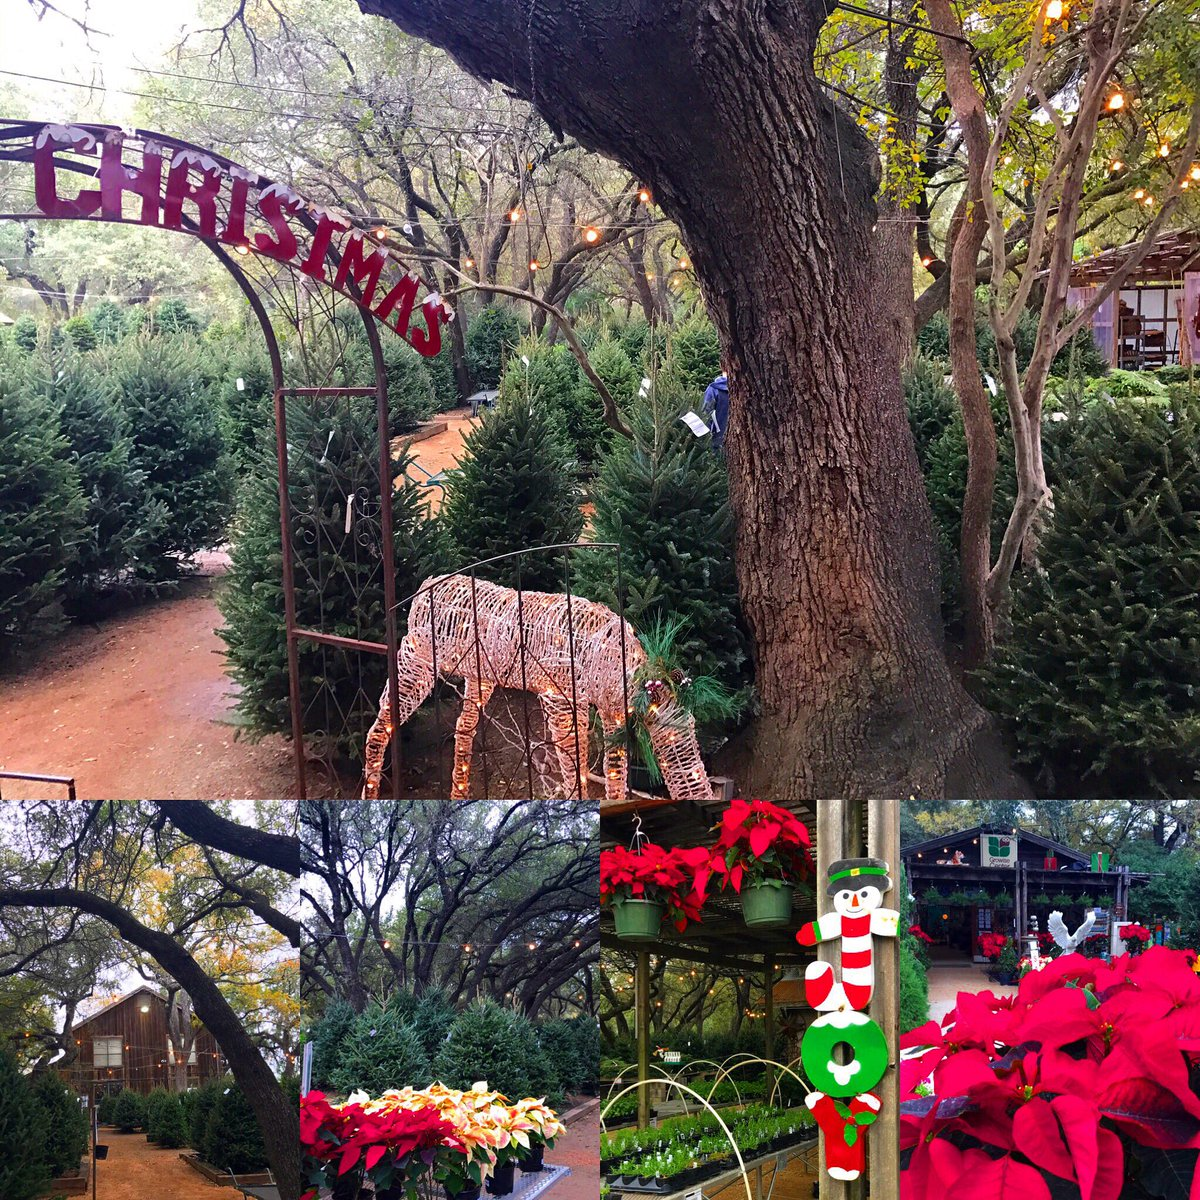 So still haven't found the right mini-tree...YET, look at this magical Christmas place I discovered! @KABBFOX29